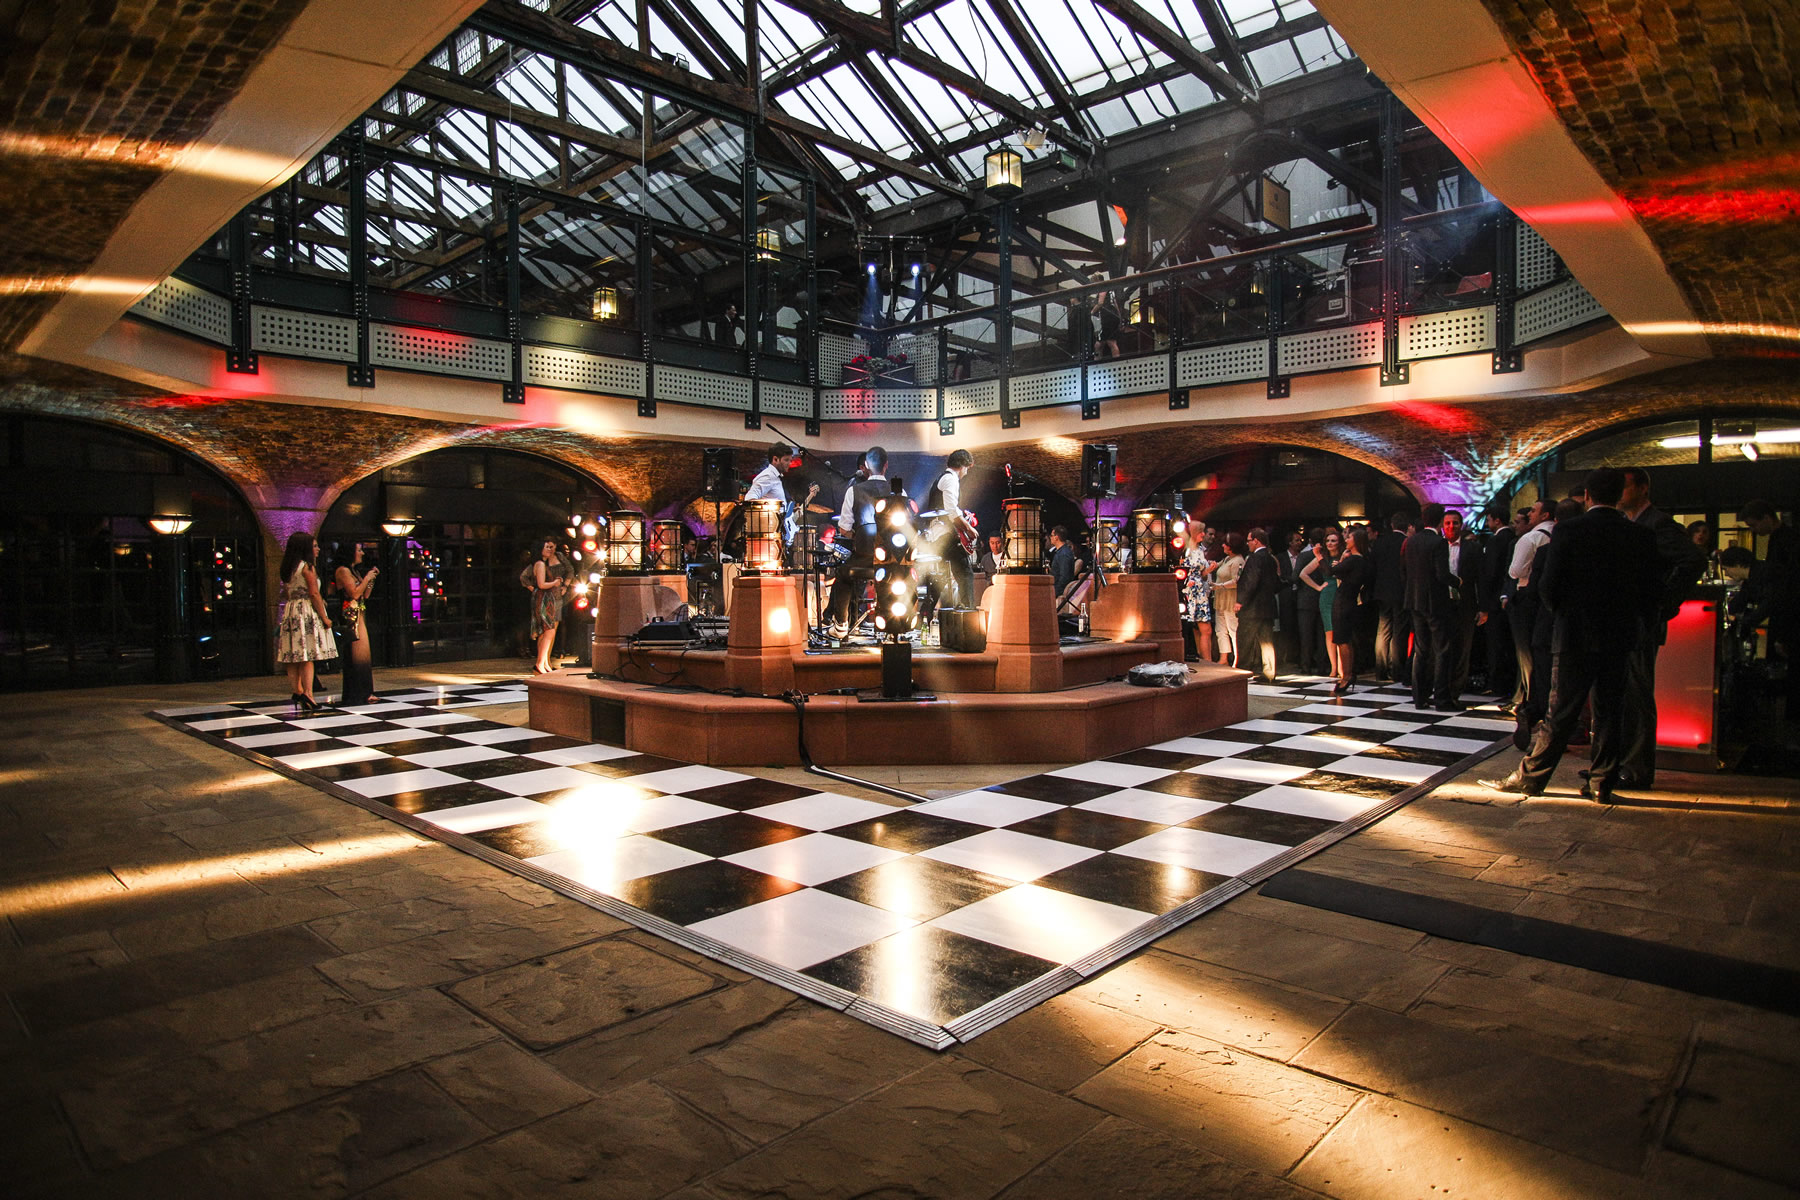 Albert Hall Dance Floors